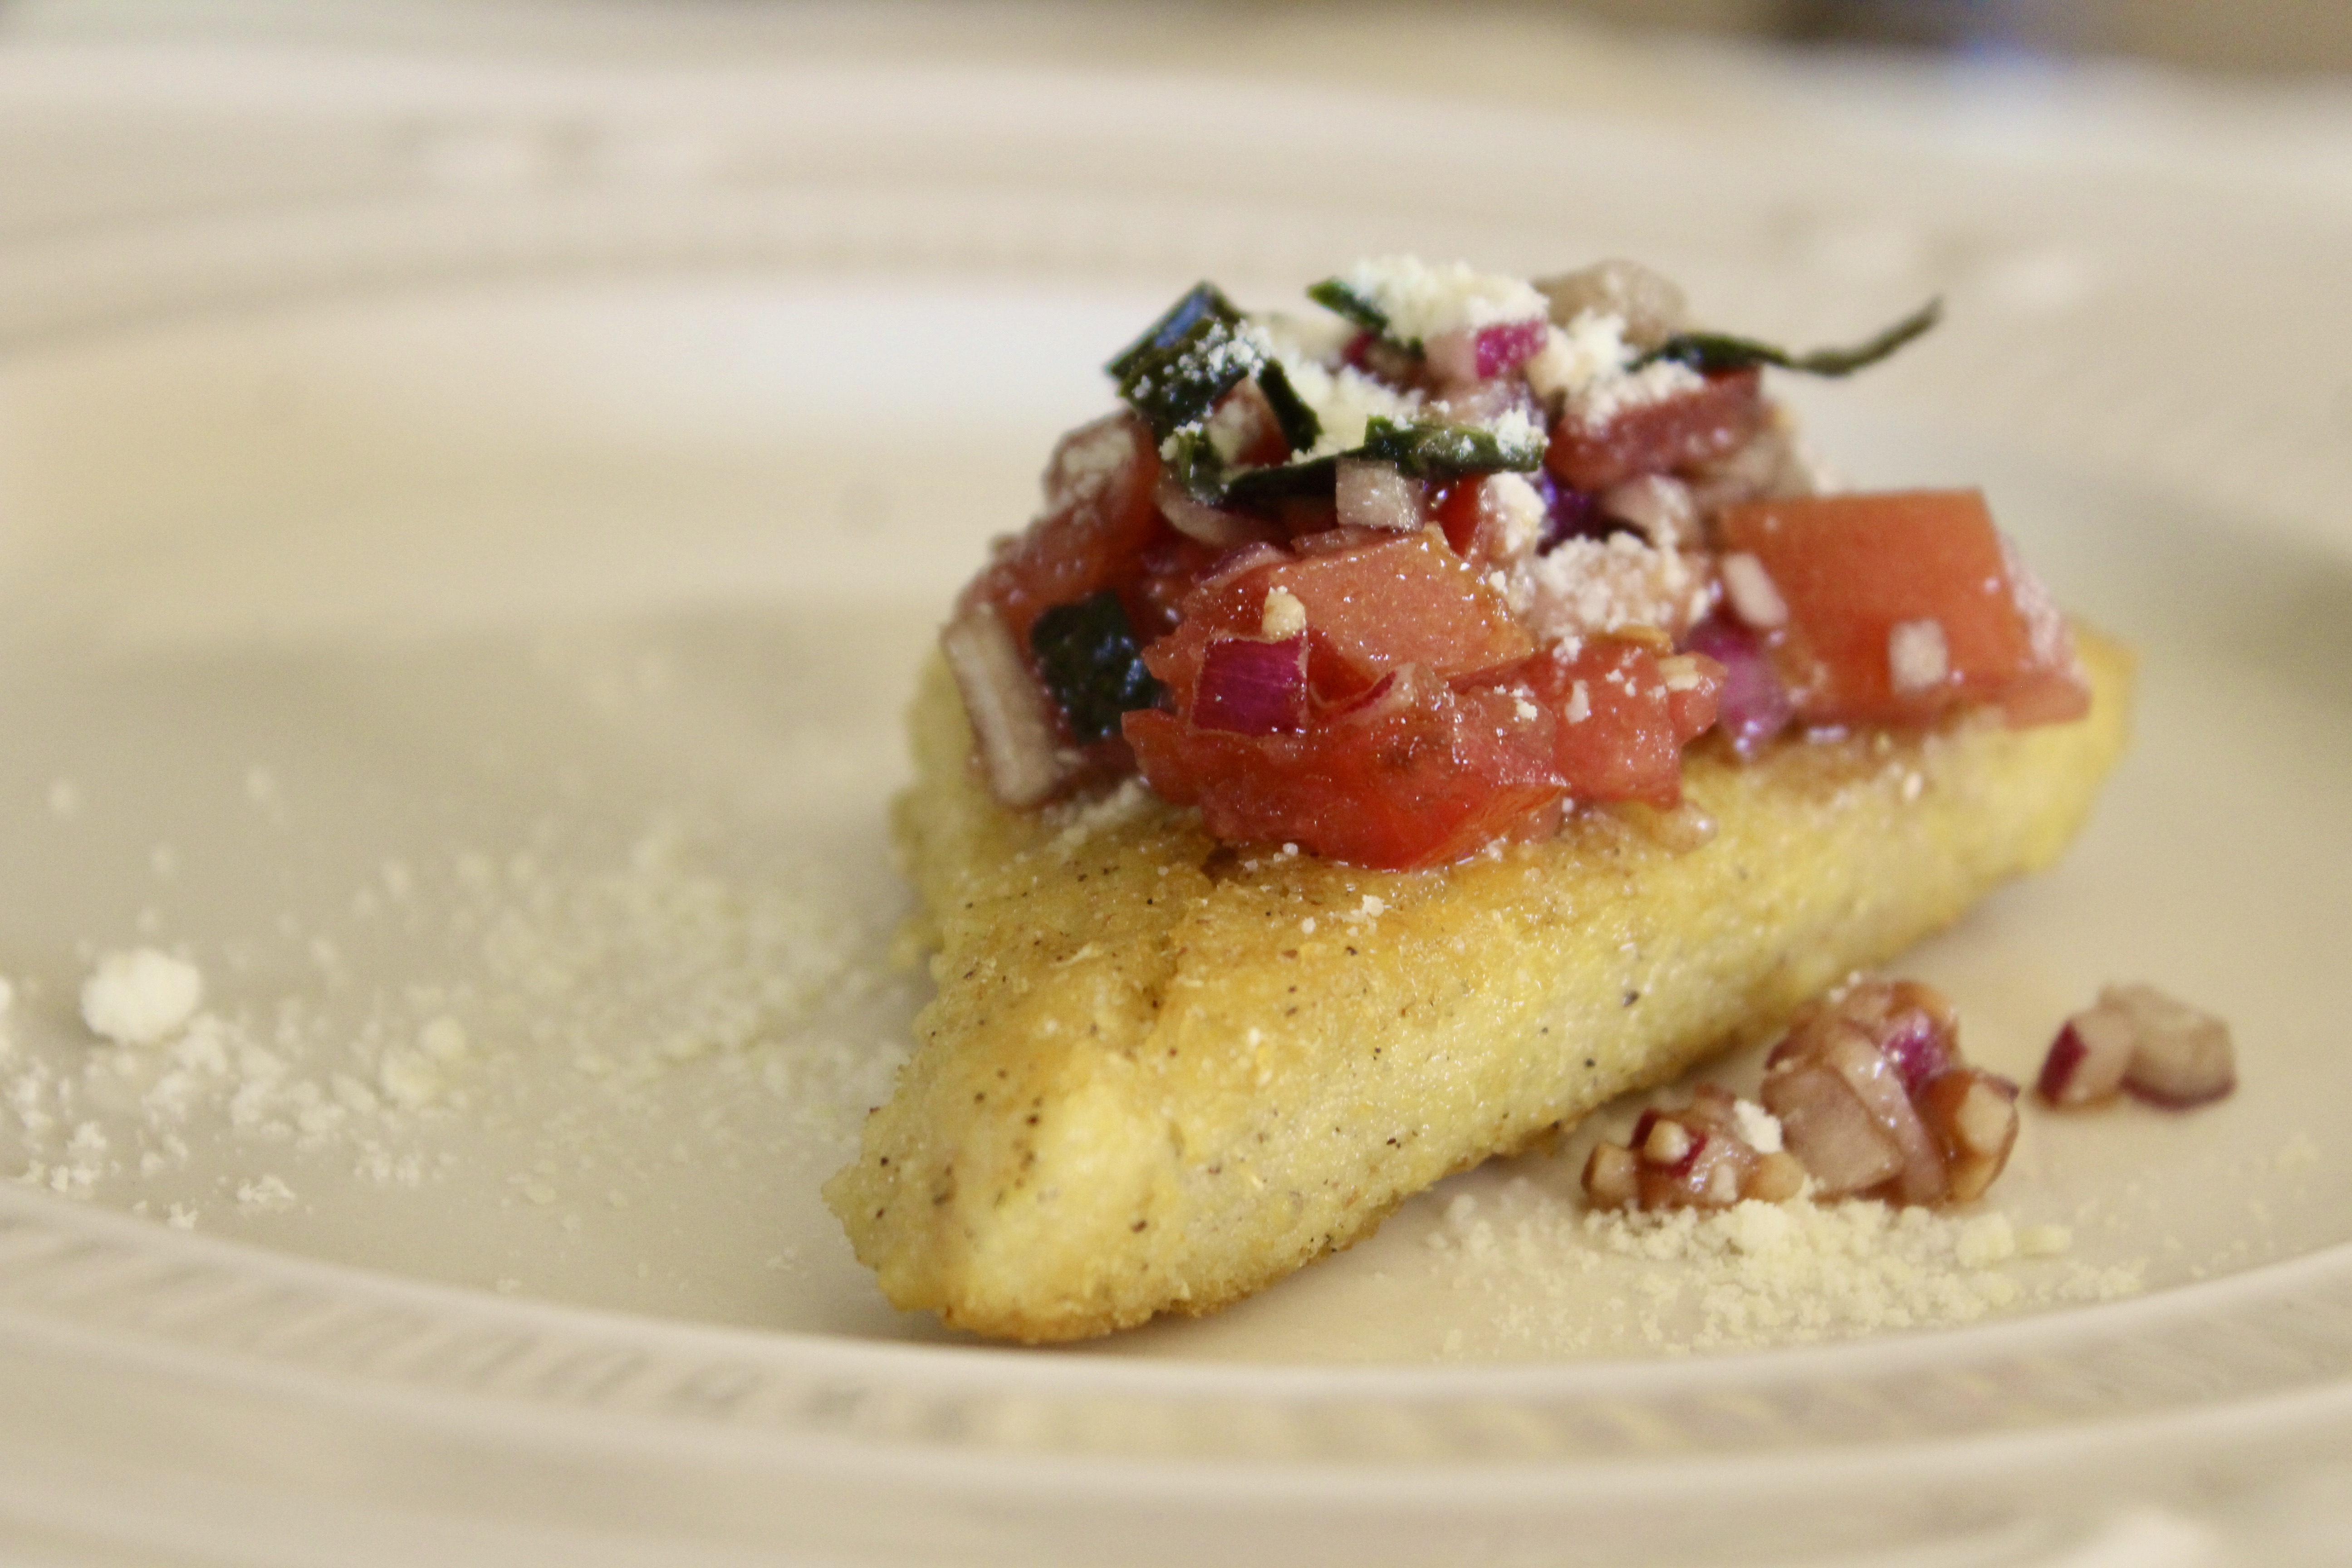 Pan-Fried Polenta with Bruschetta Topping